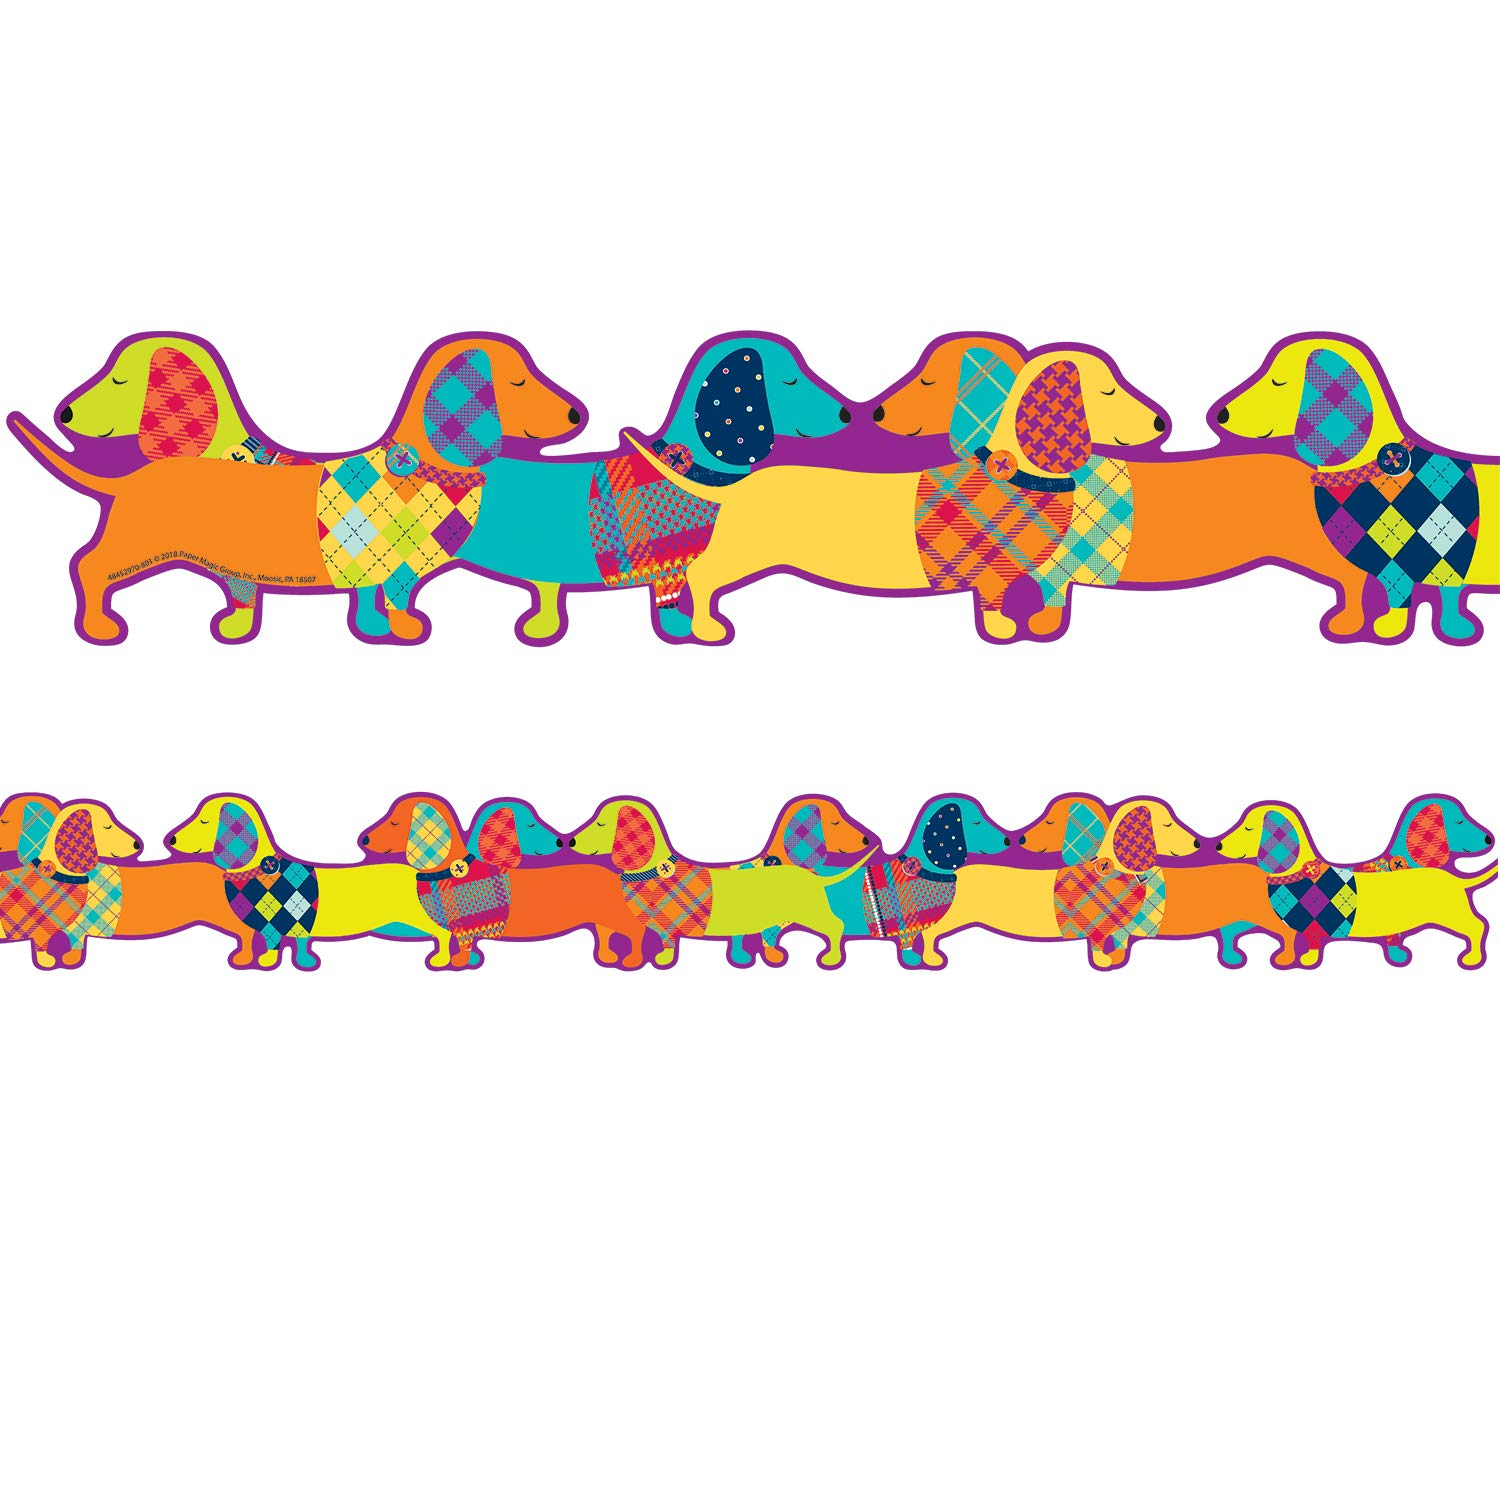 Eureka Multicolor Plaid Dog Themed Extra Wide Bulletin Board Trim and Classroom Decoration Strips, 12pcs, 3.25'' x 37''